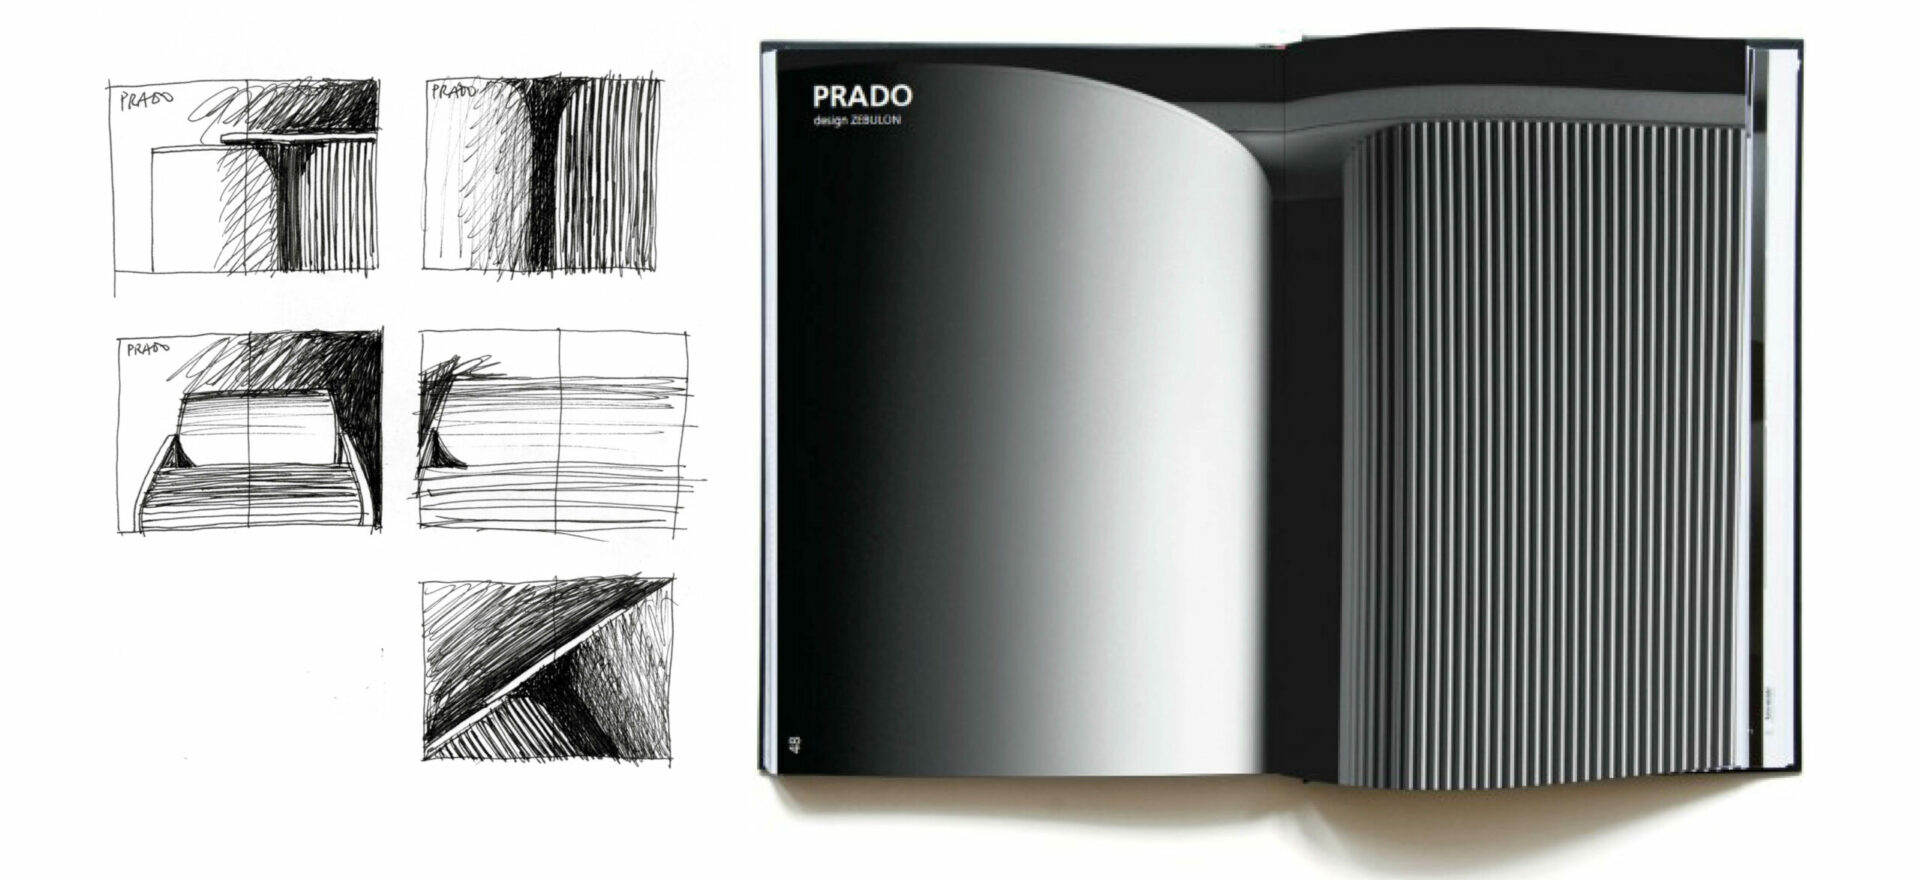 Five design drawings and a light catalogue showing Prado wall r7s White light from Prado Collection for Artemide Architectural.